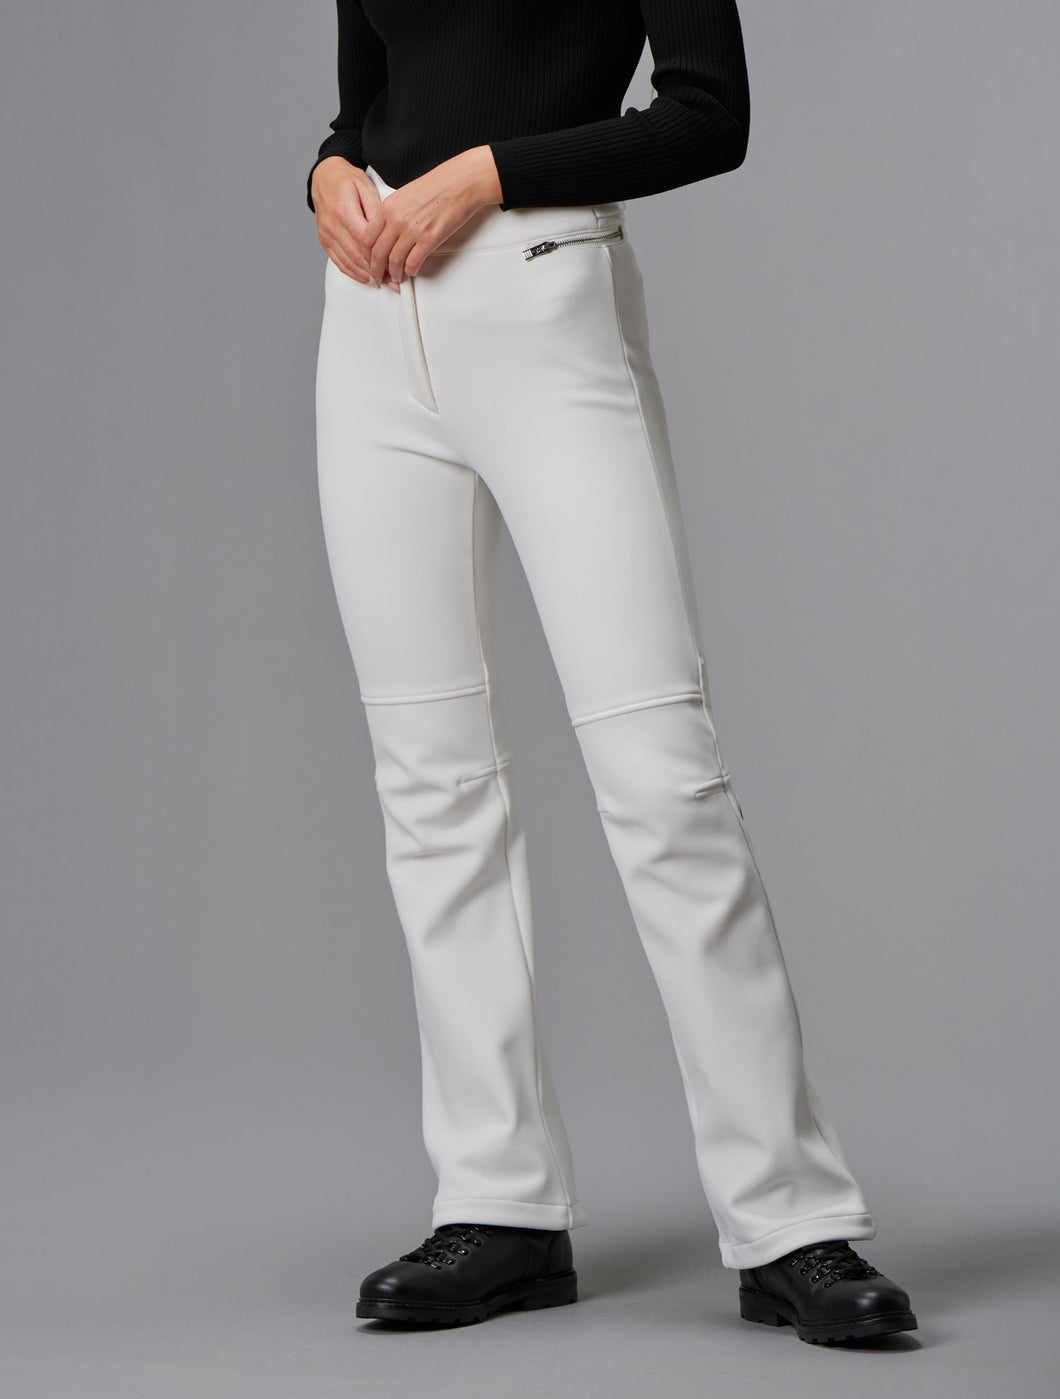 Elancia Ii Women Pants - White